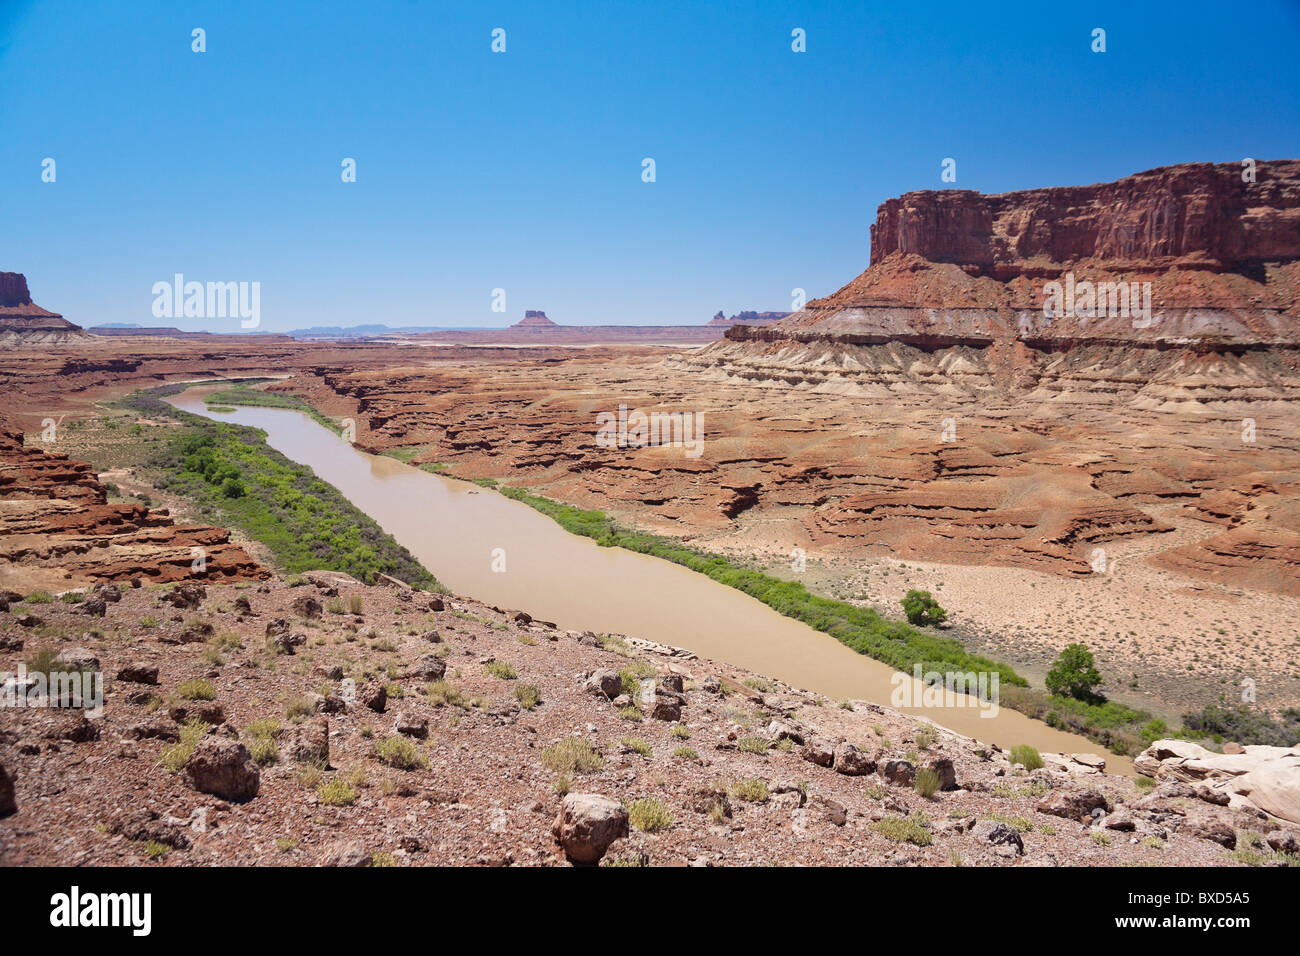 The Green River in Canyonlands National Park meanders through the White Rim trail. - Stock Image